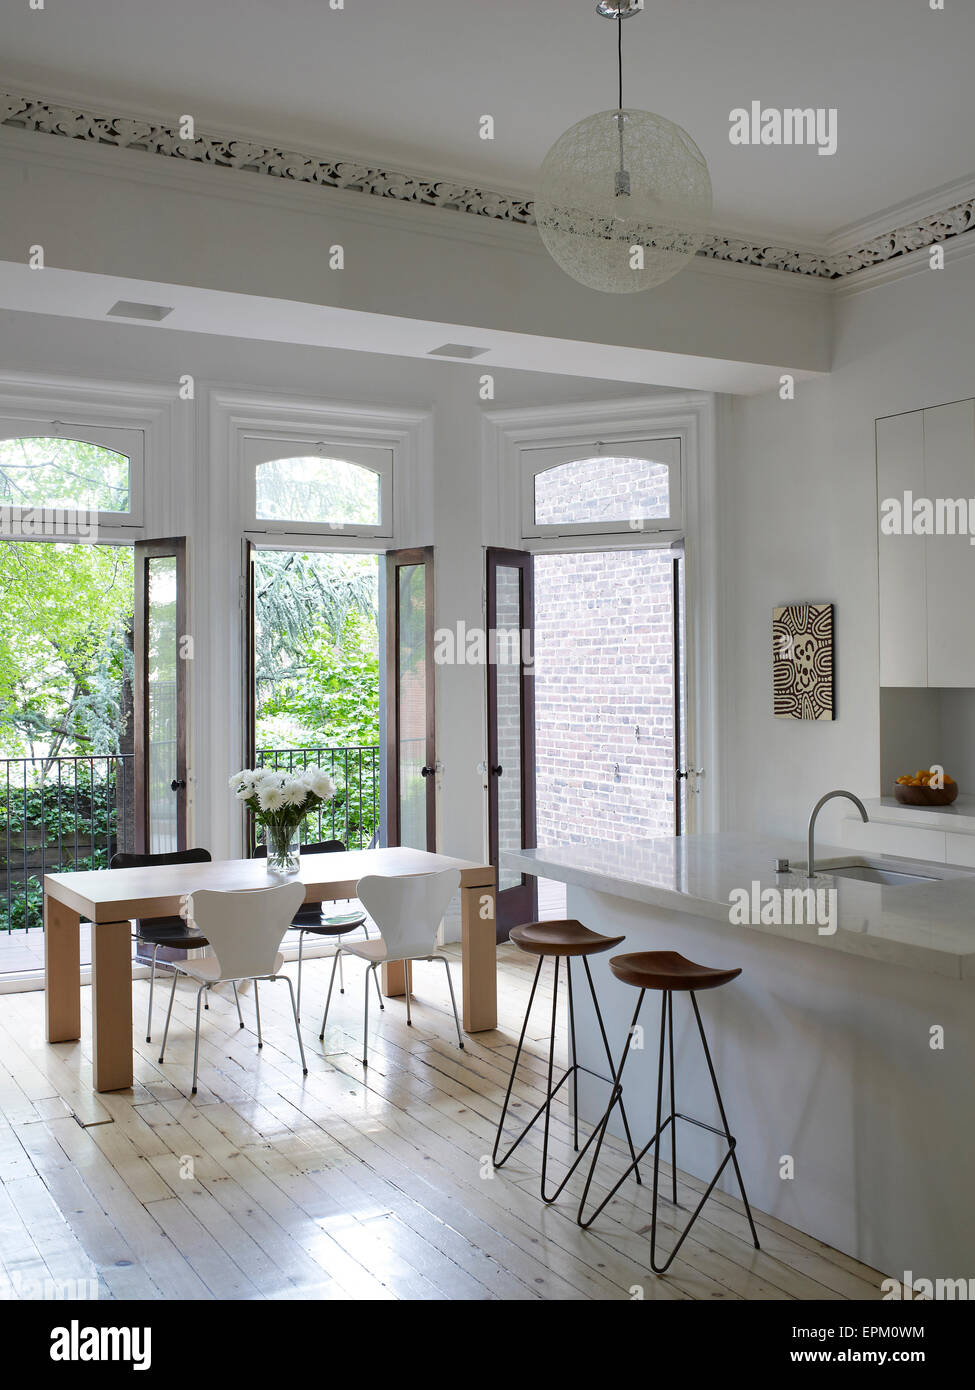 breakfast bar stools and small dining table in white kitchen with EPM0WM